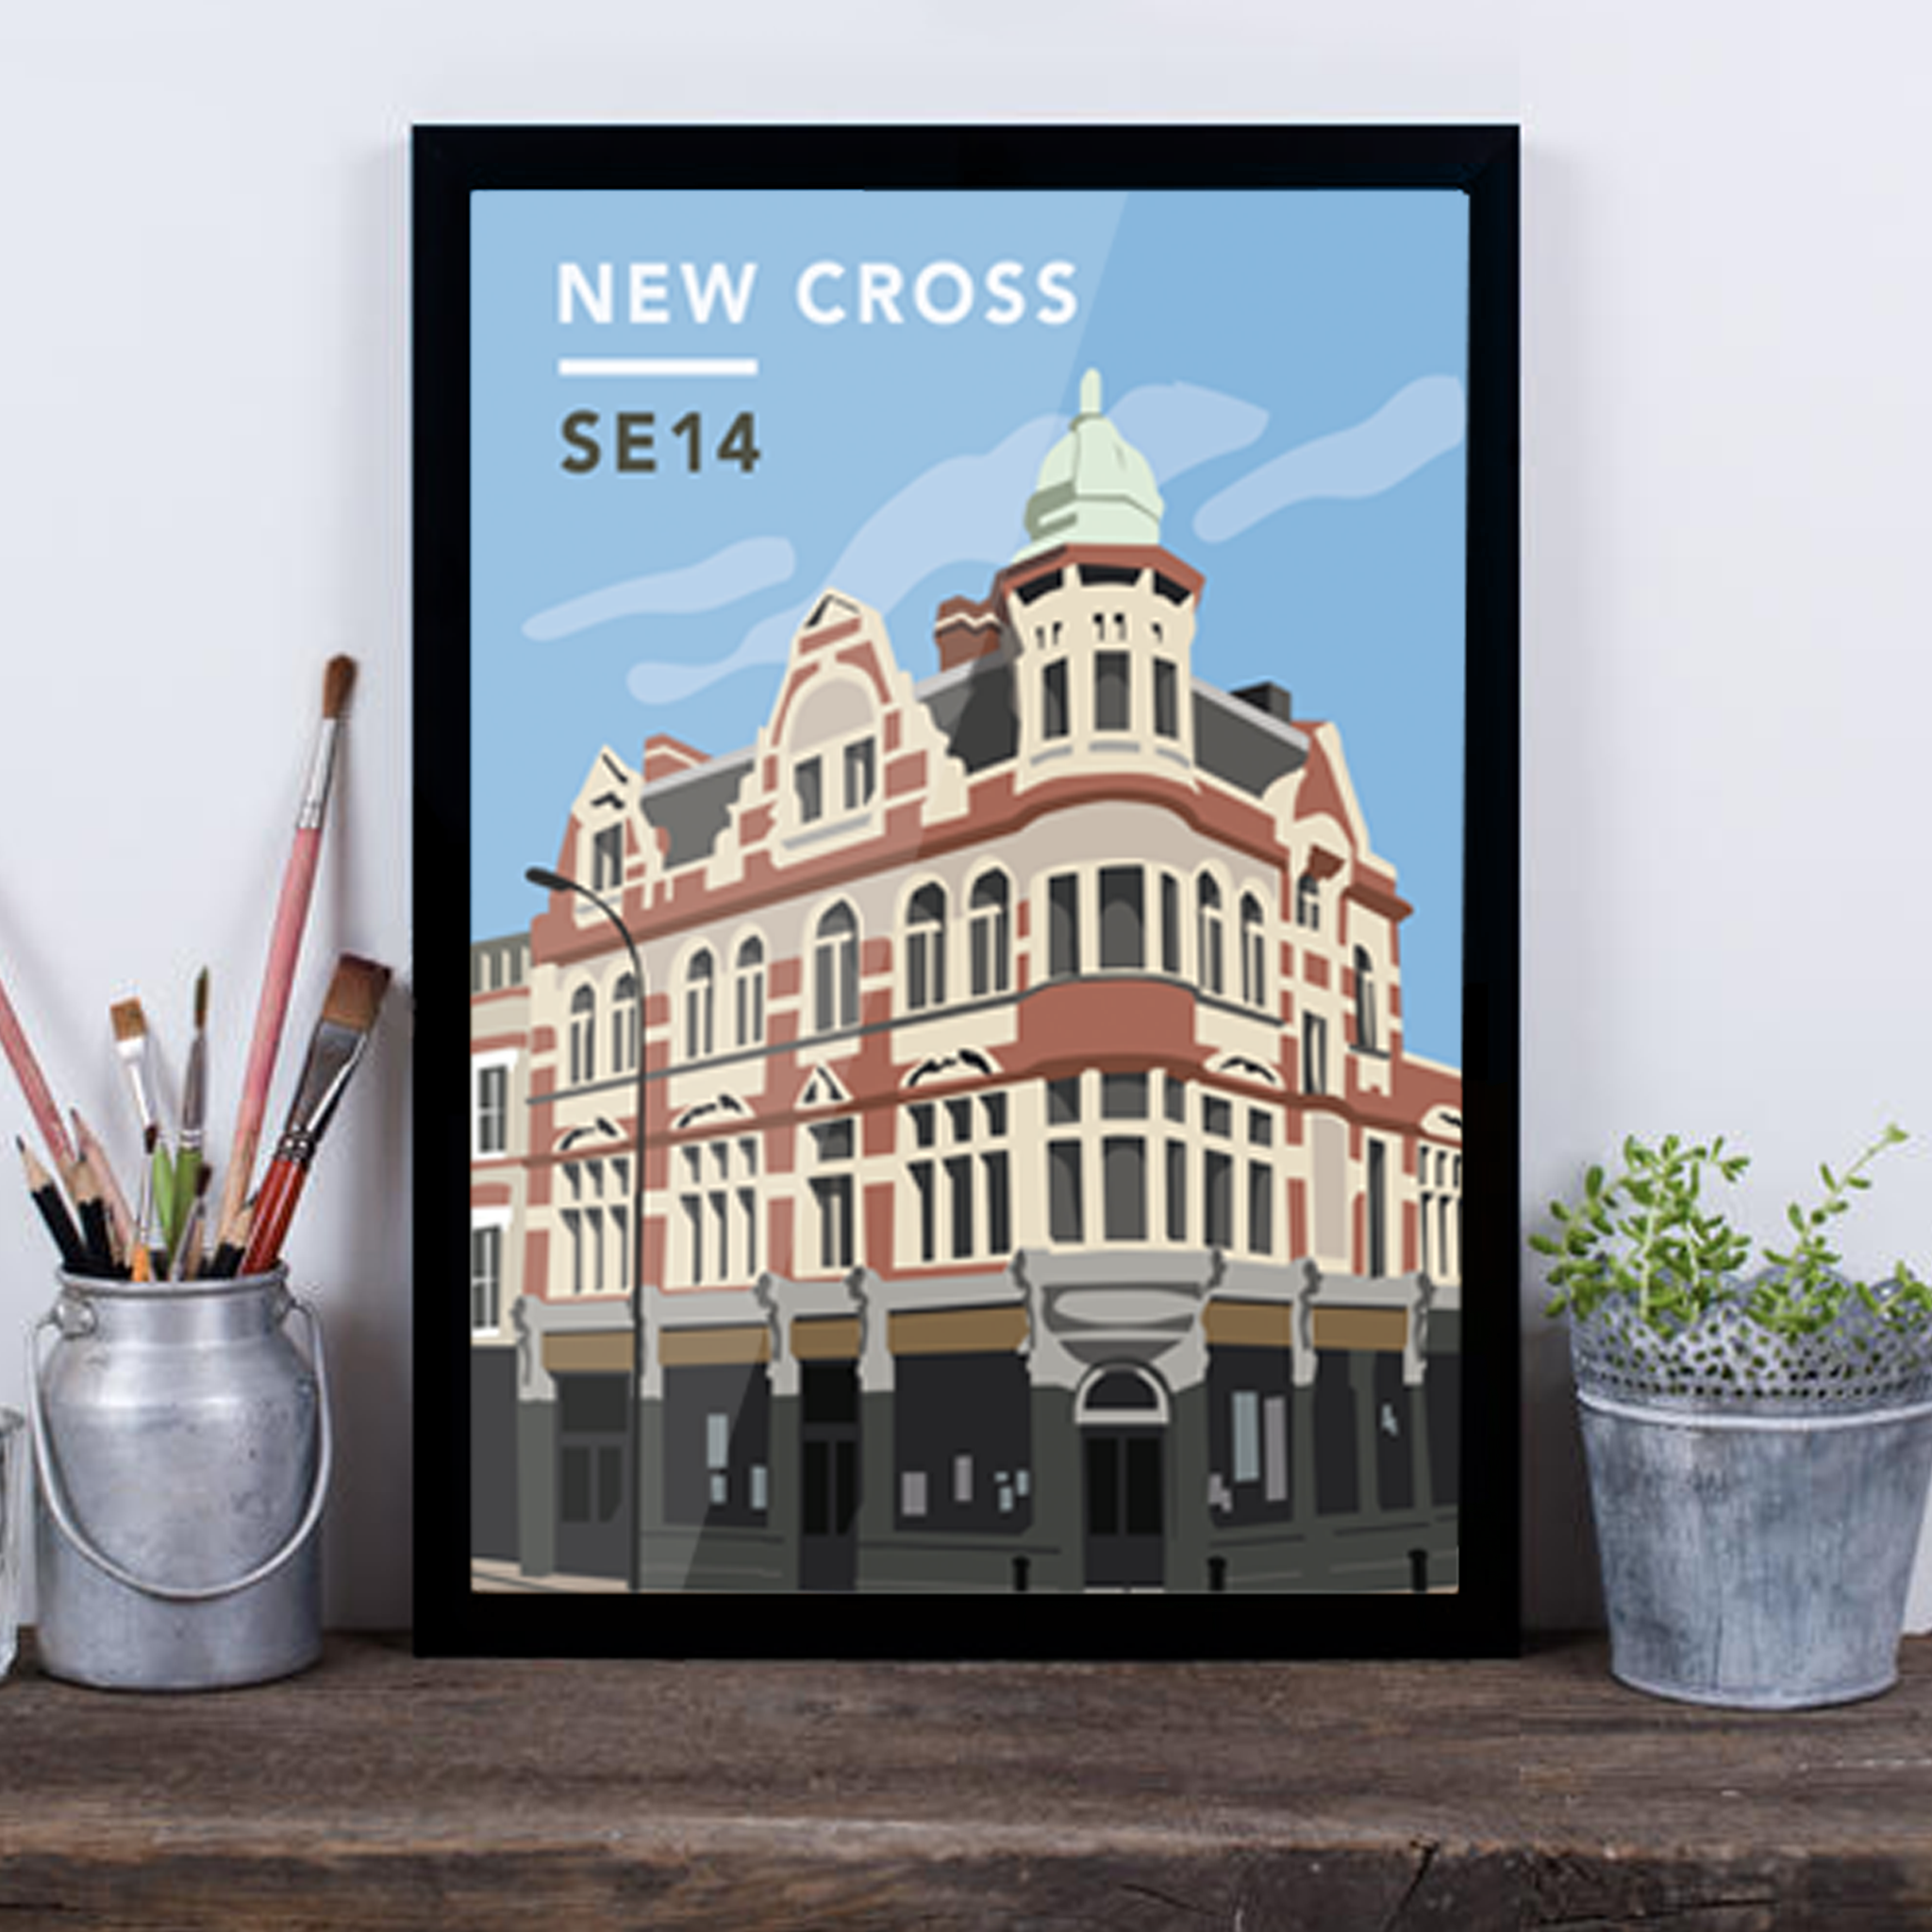 New Cross SE14 - Giclée Art Print -